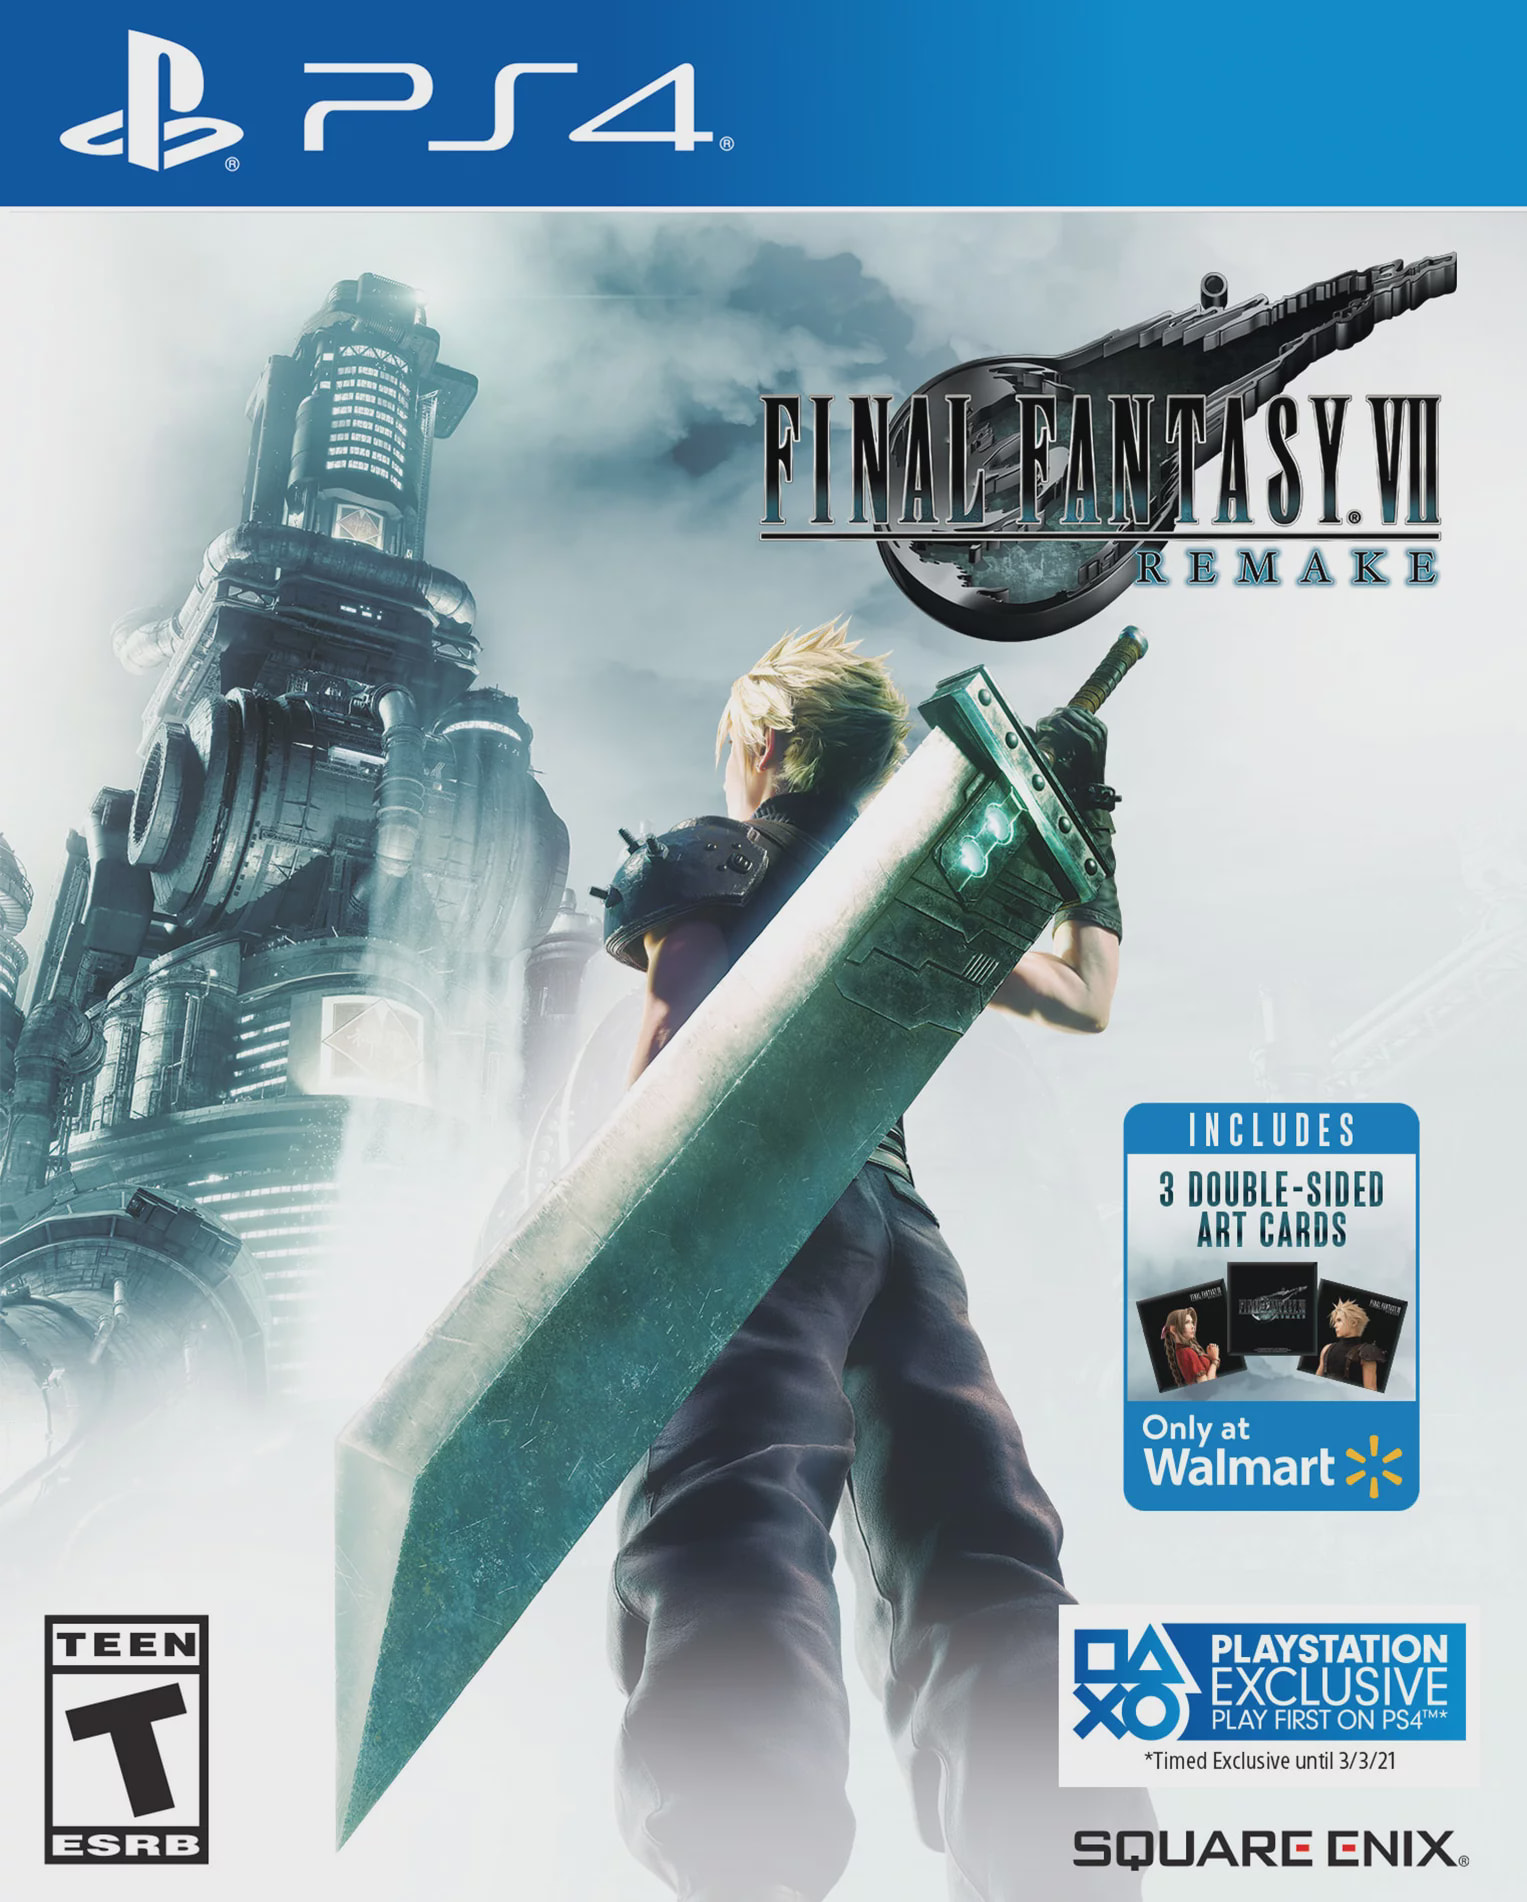 Walmart Exclusive: Final Fantasy VII Remake, Square Enix, PlayStation 4, 662248923635